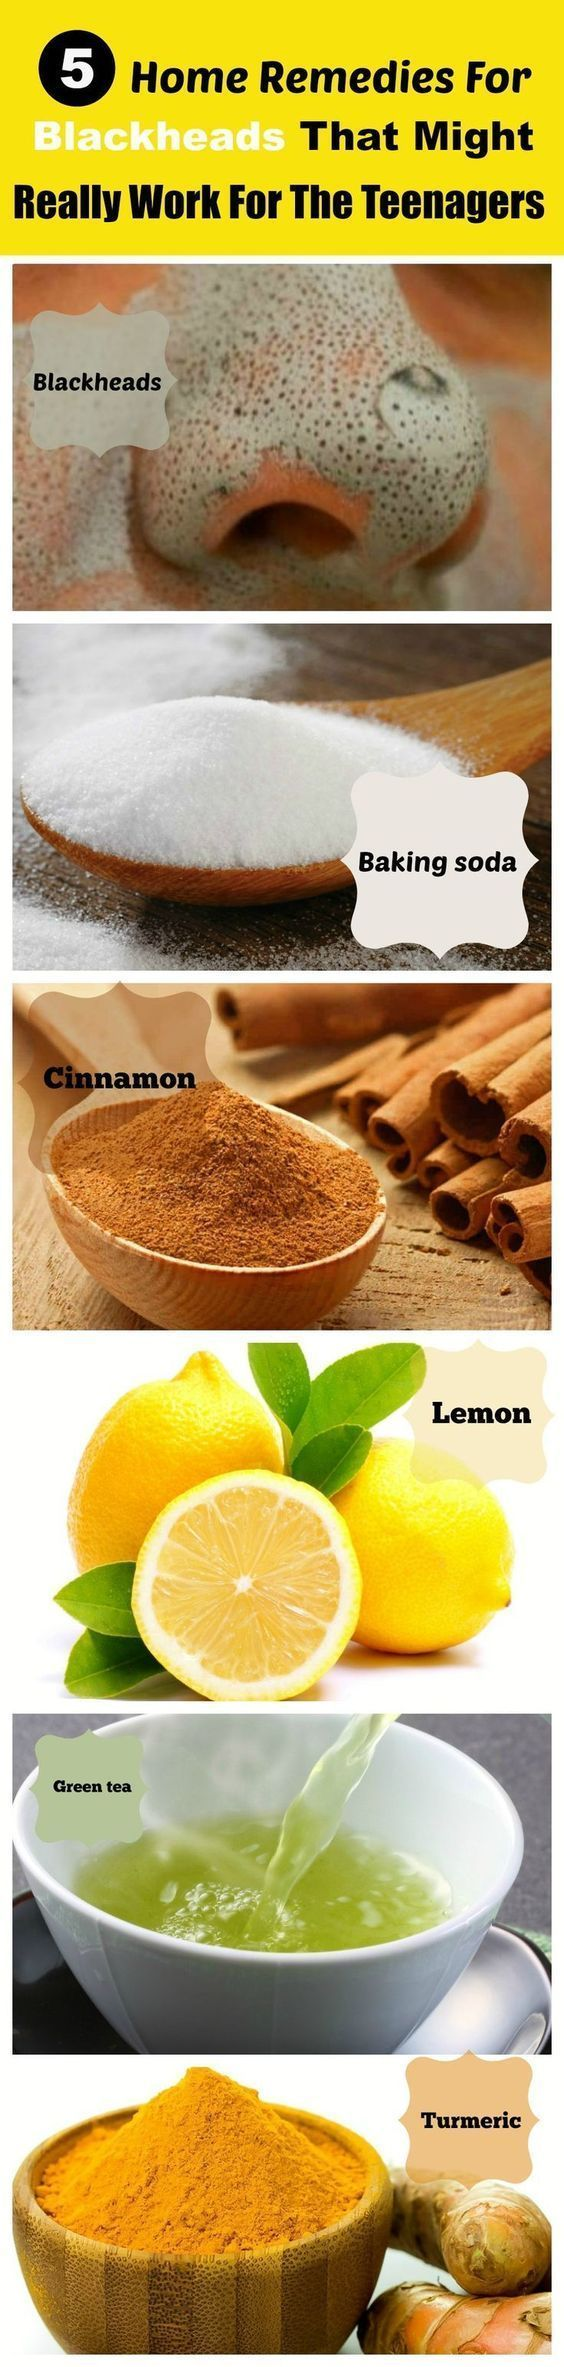 Top 5 Home Remedies For Blackheads